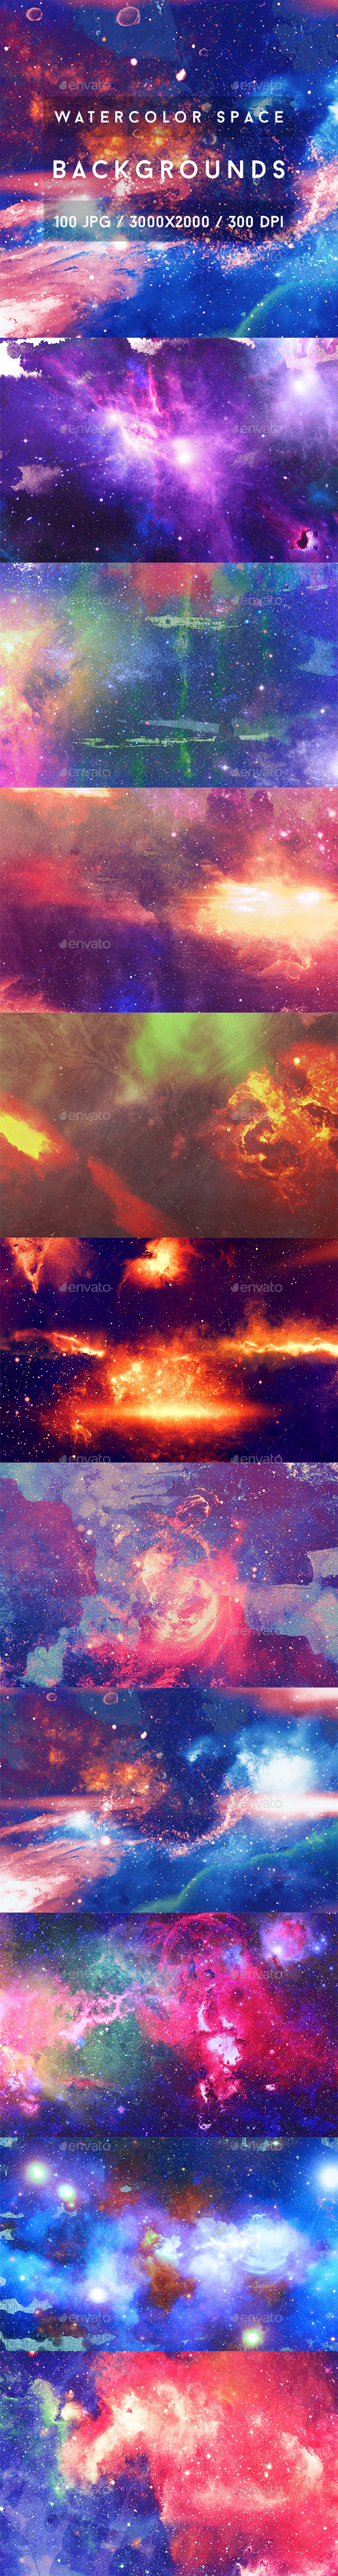 100 Watercolor Space Backgrounds - Backgrounds Graphics